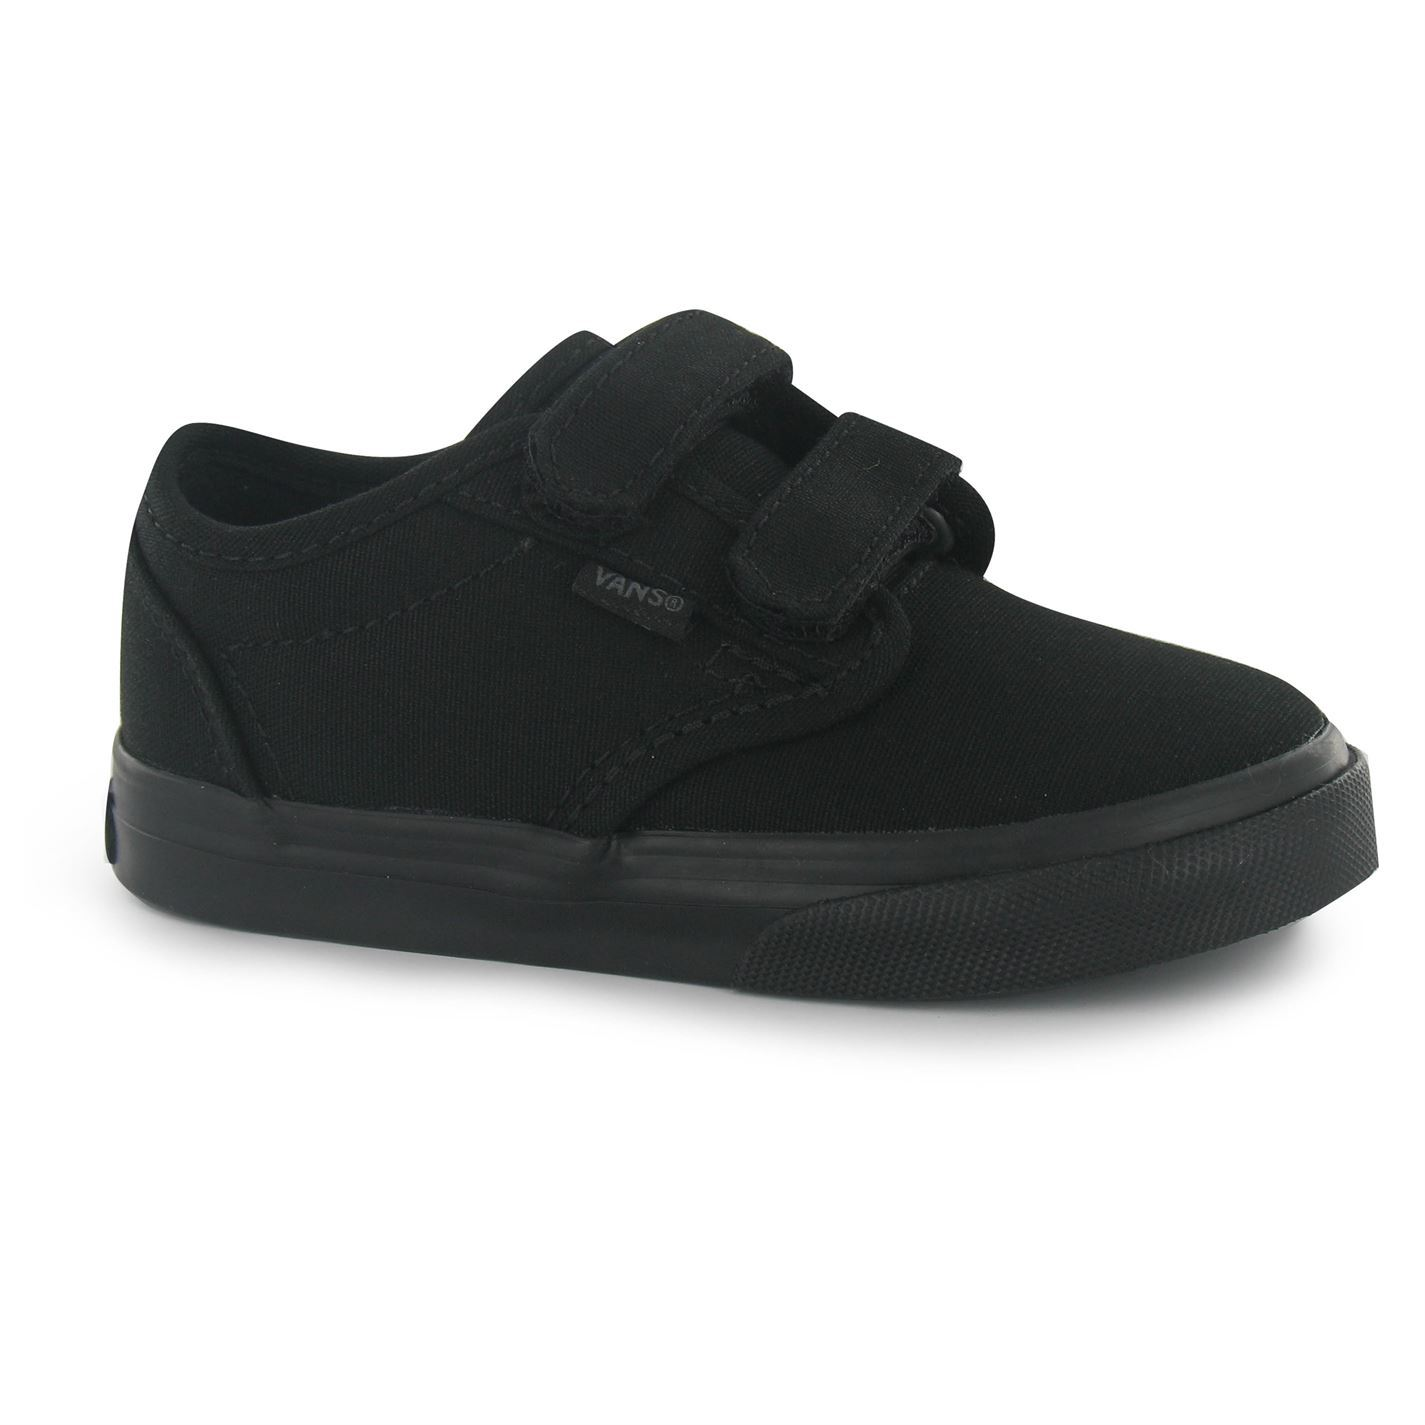 vans atwood v canvas shoes plimsoles infant